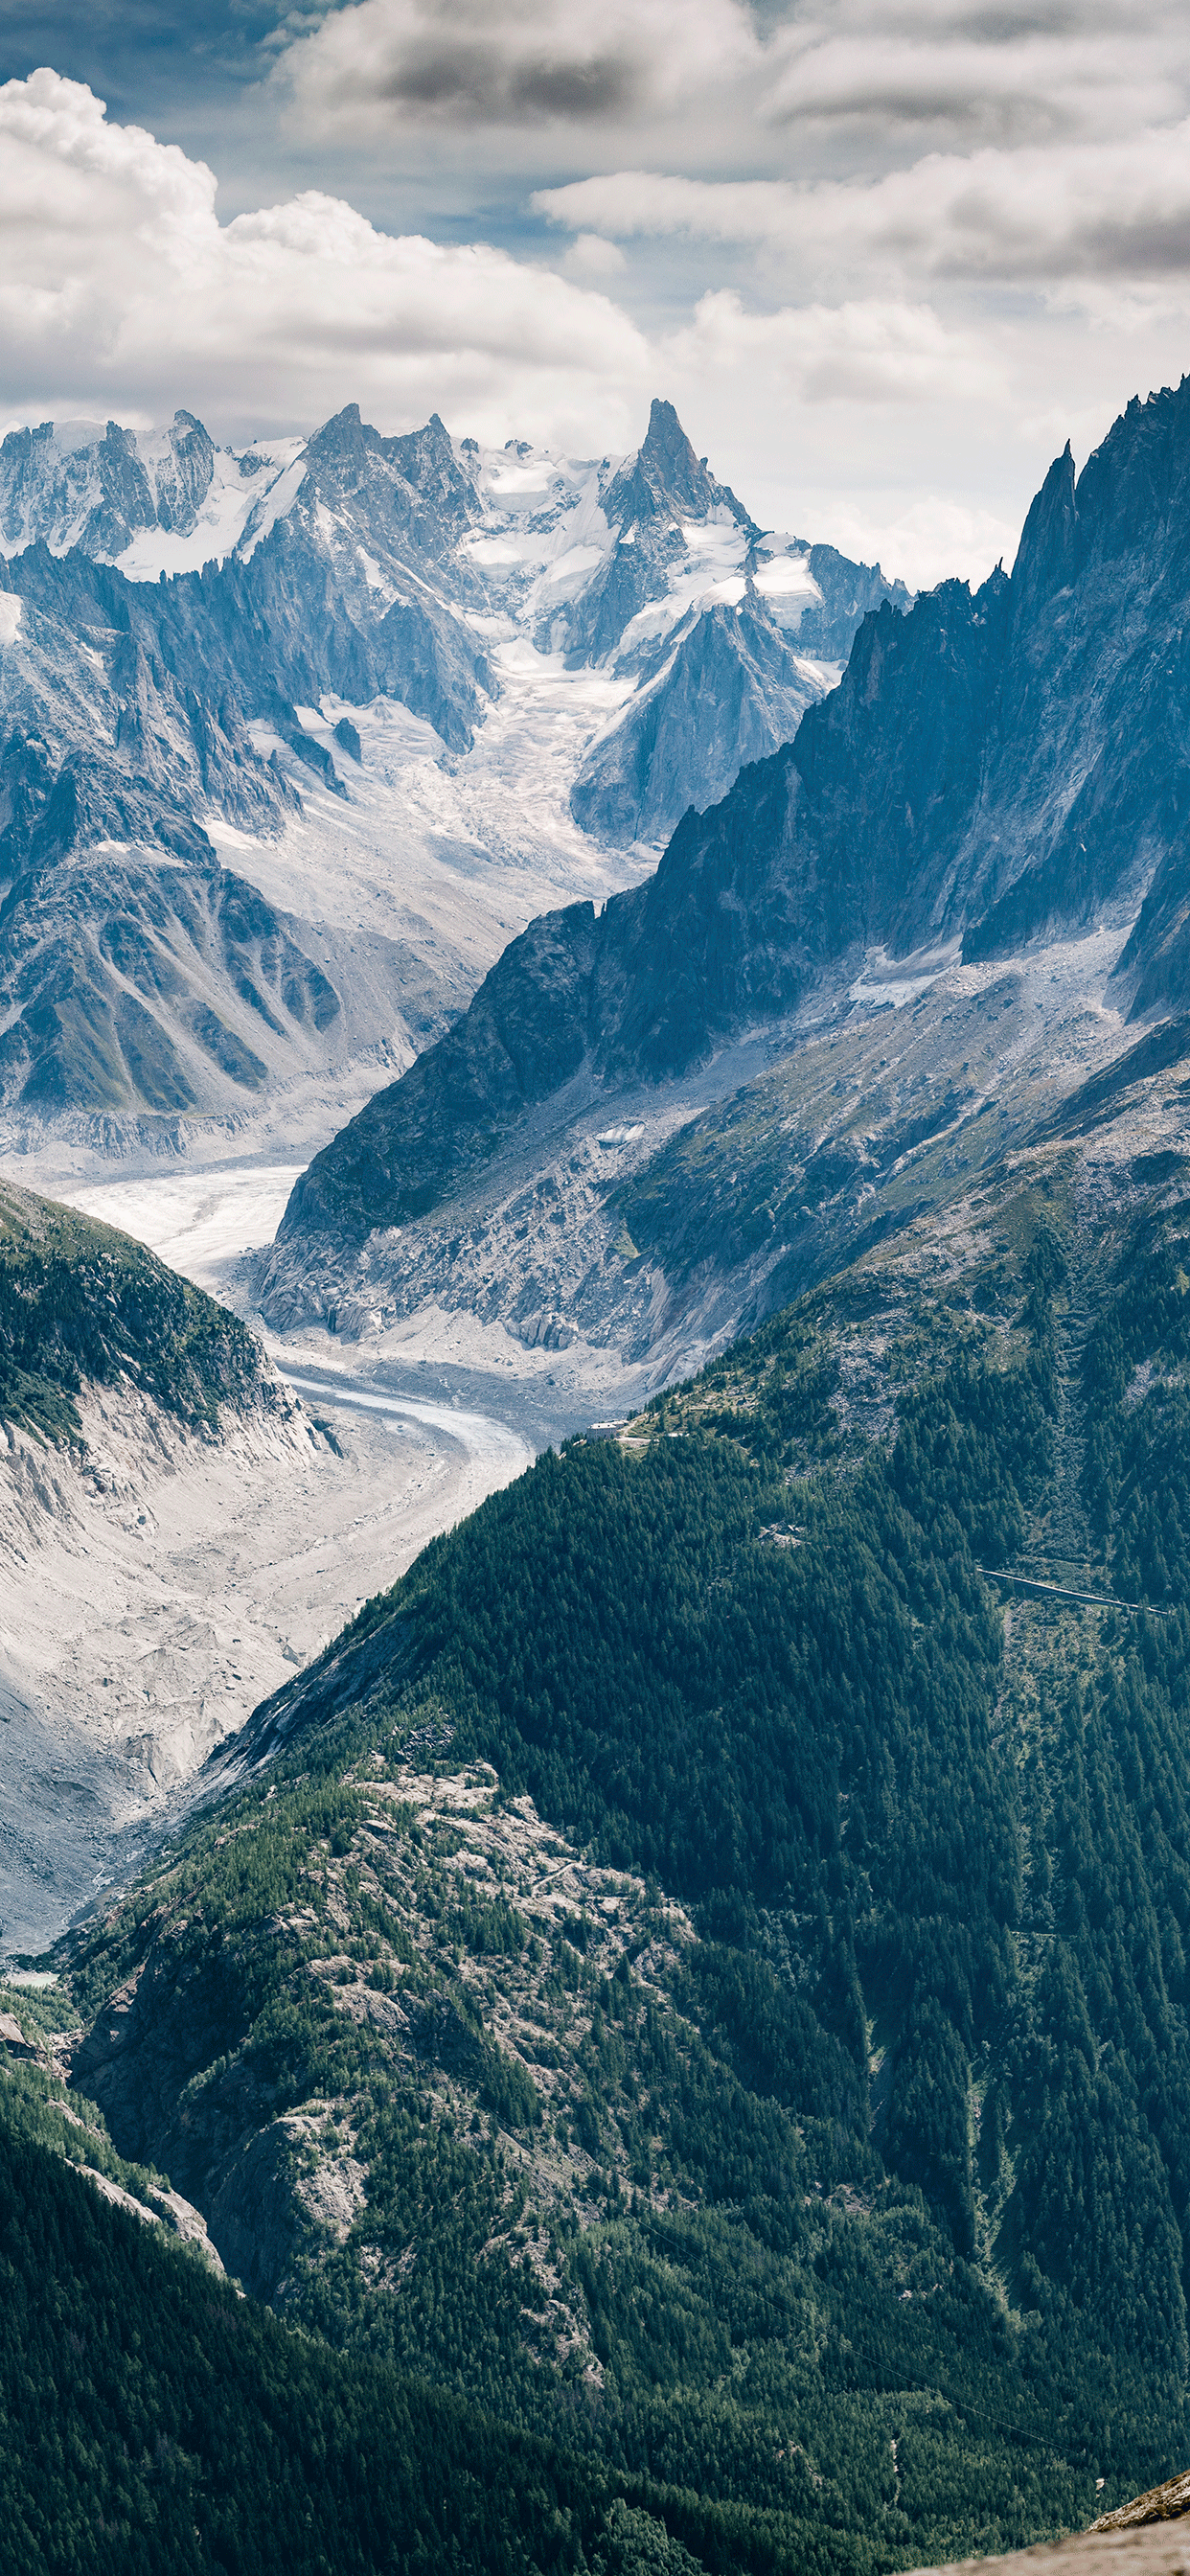 iPhone wallpaper mountains chamonix Mountains